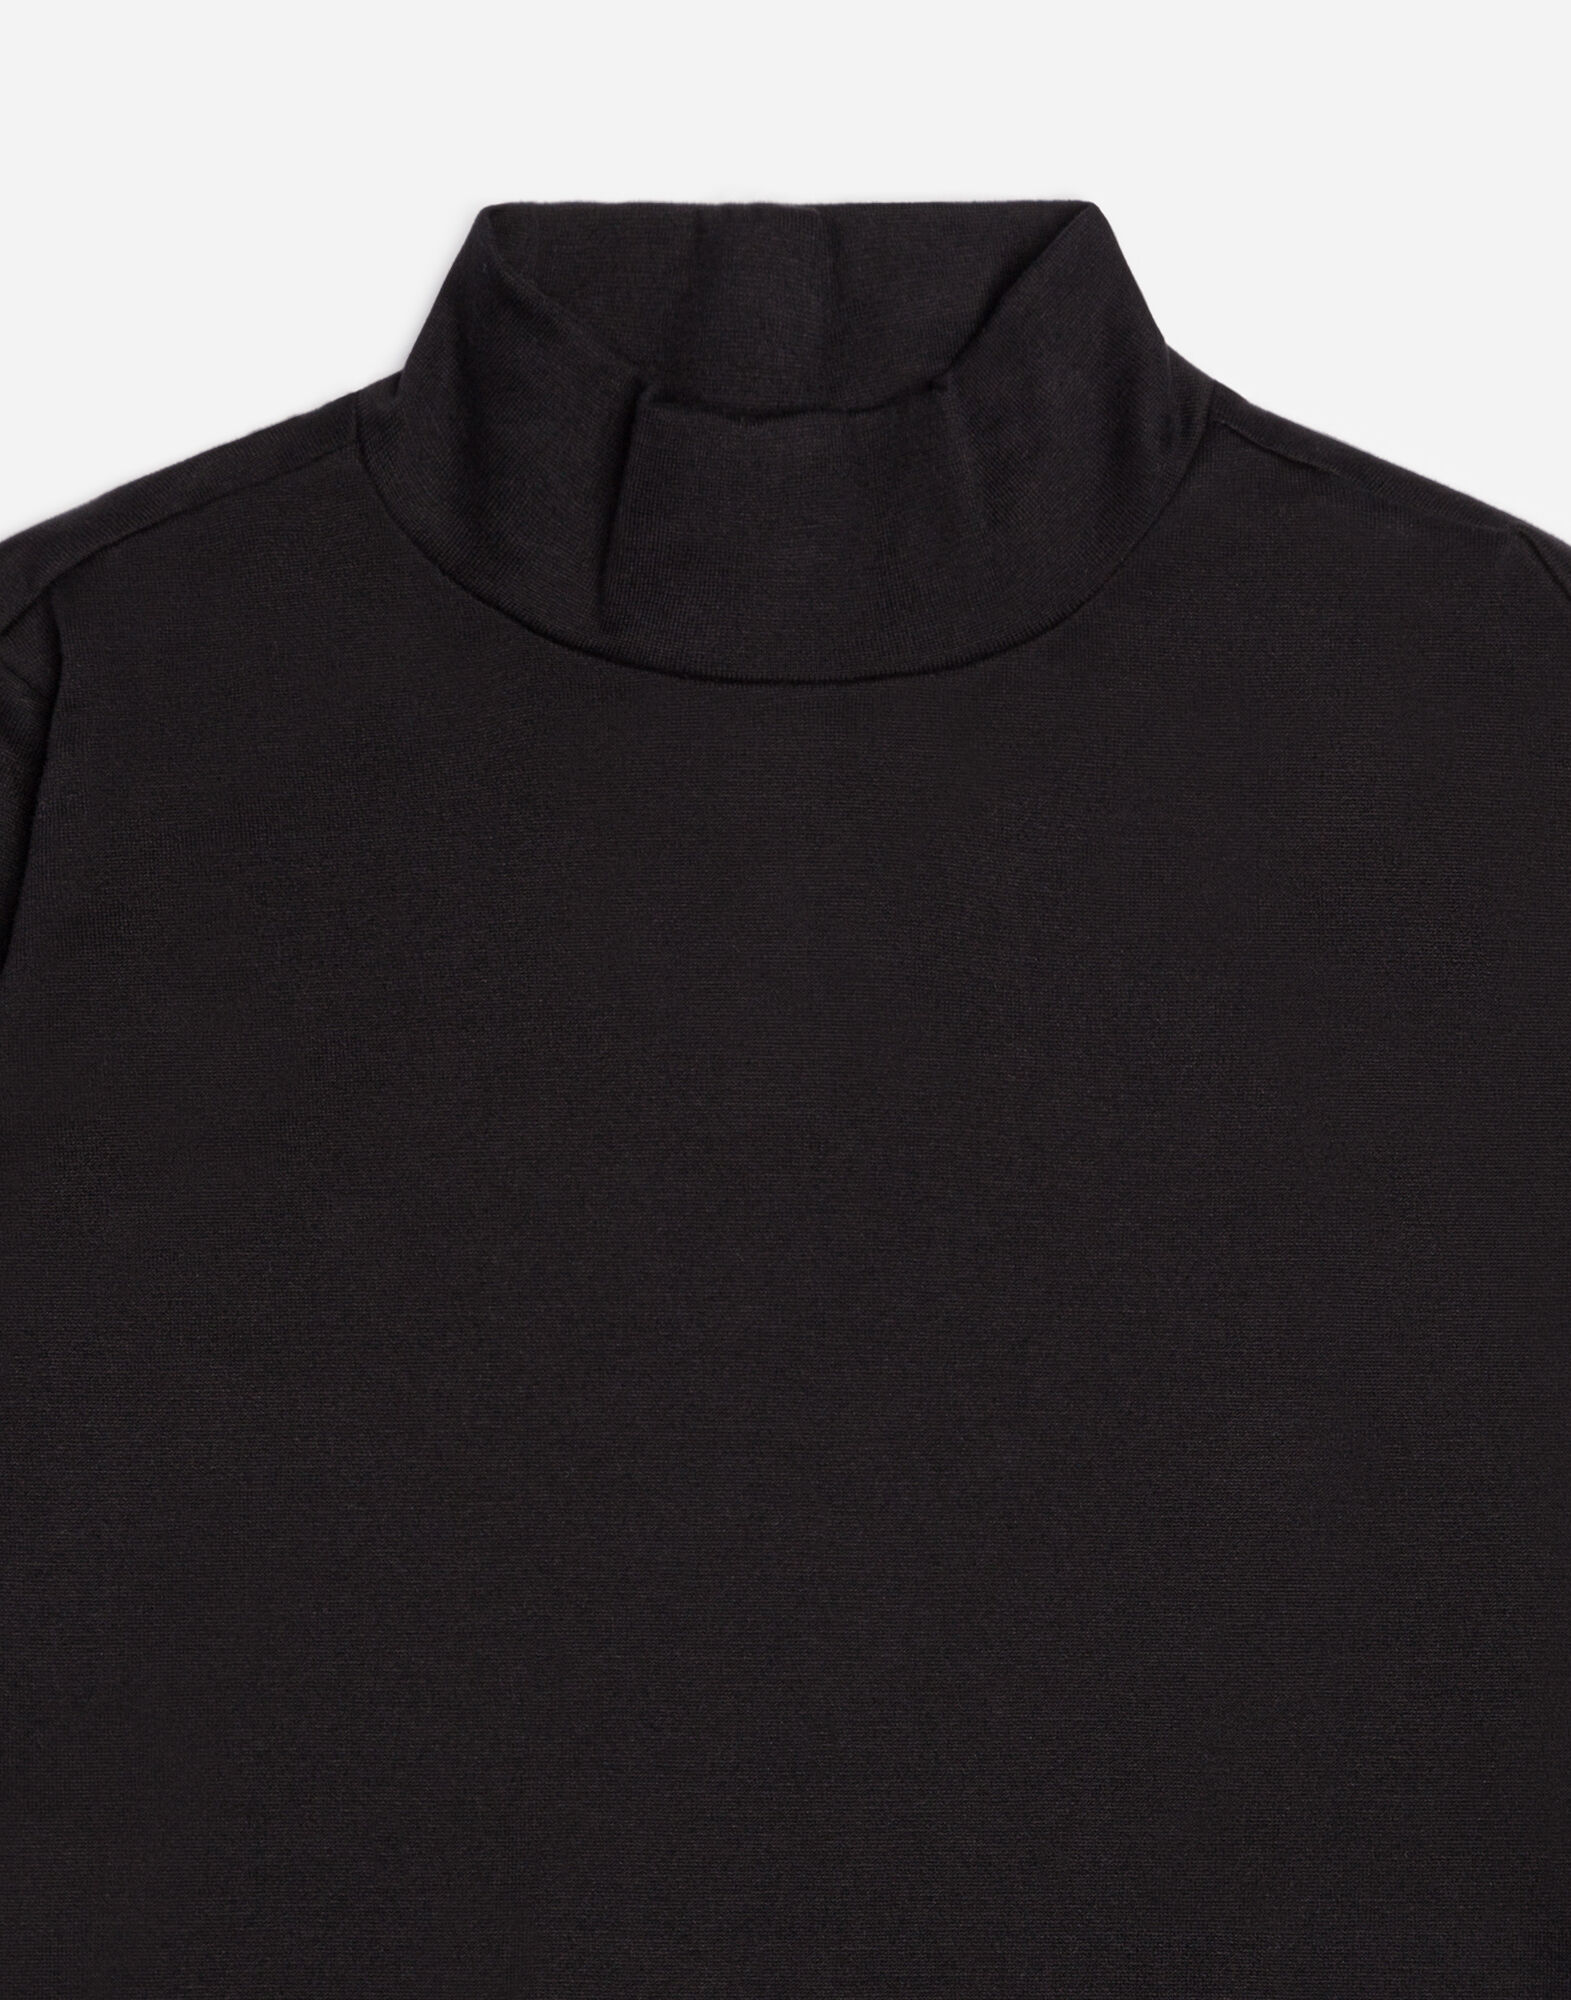 HIGH-NECK COTTON T-SHIRT